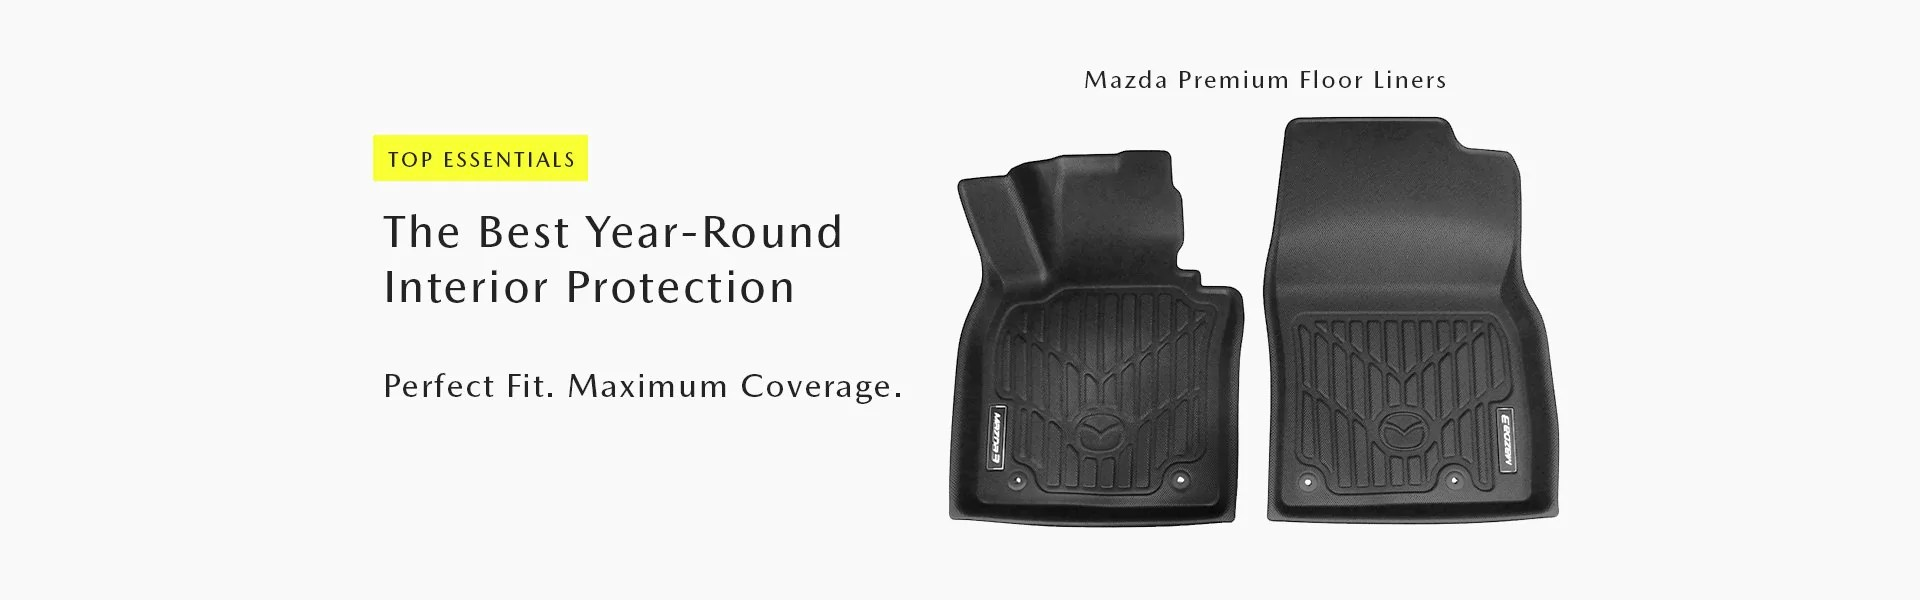 2019 mazda summer clinic promotion 15 off mazda accessories  [ 1920 x 600 Pixel ]